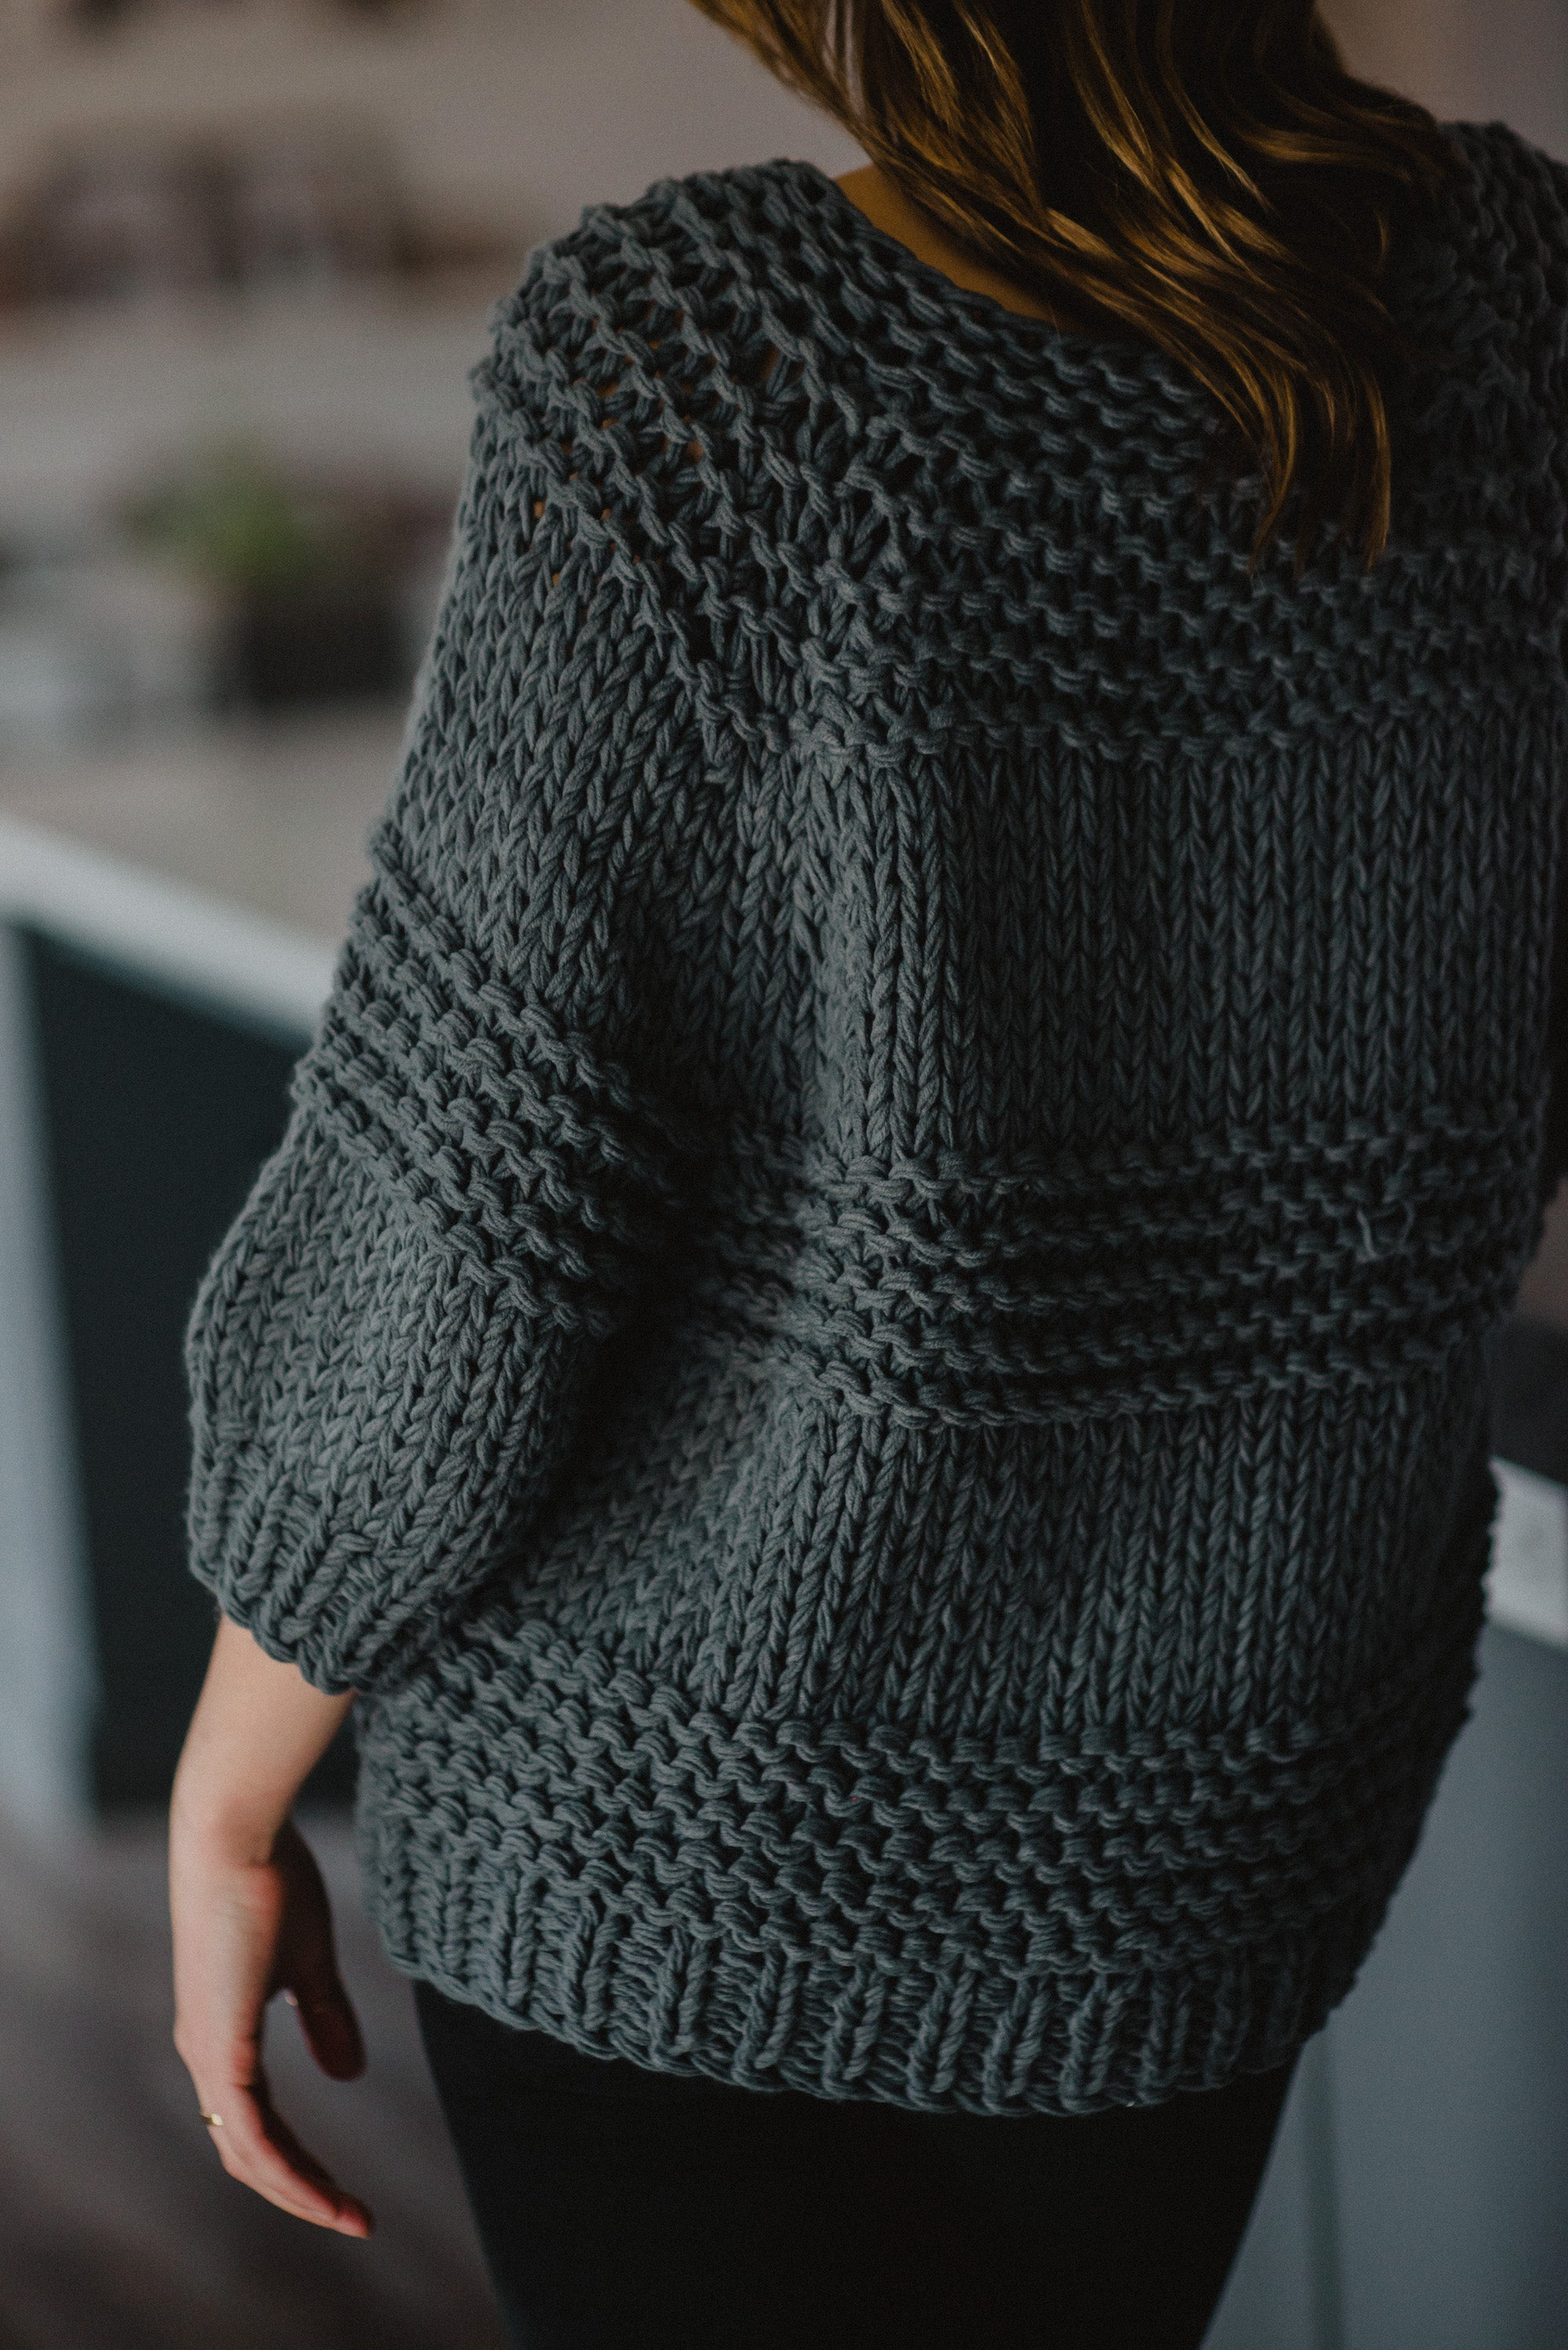 Snug + Warm Knit Sweater in Charcoal / FINAL SALE